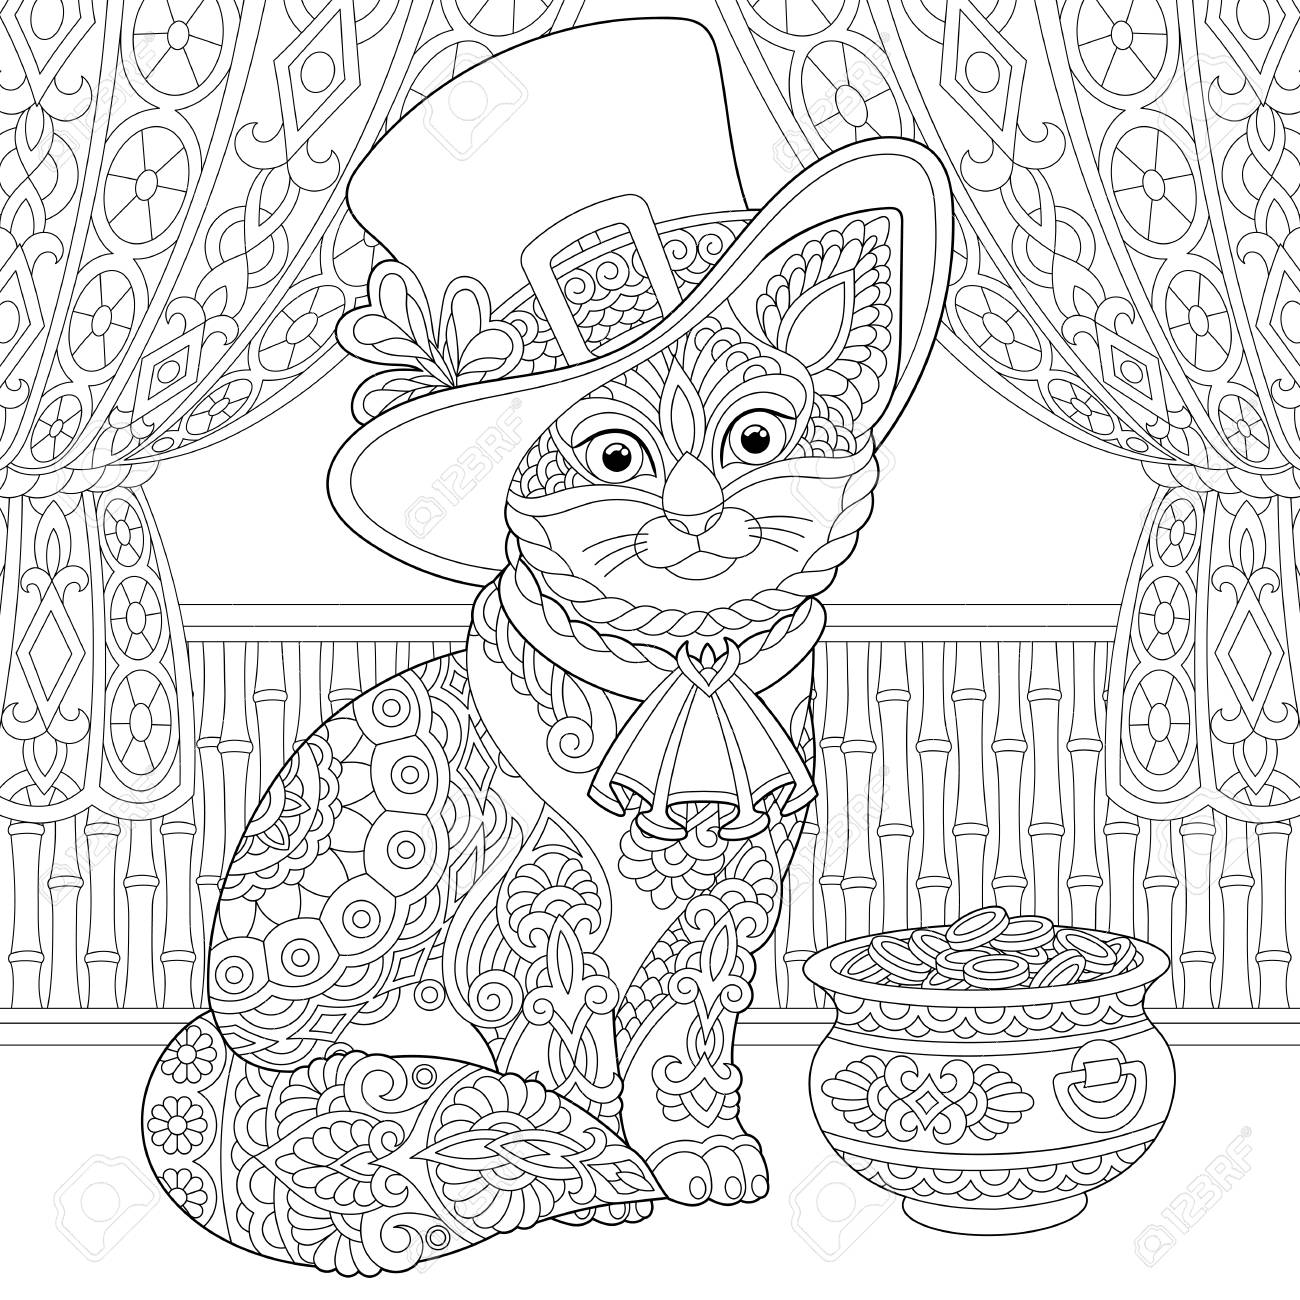 St. Patrick Day coloring page. Colouring picture with cat in..